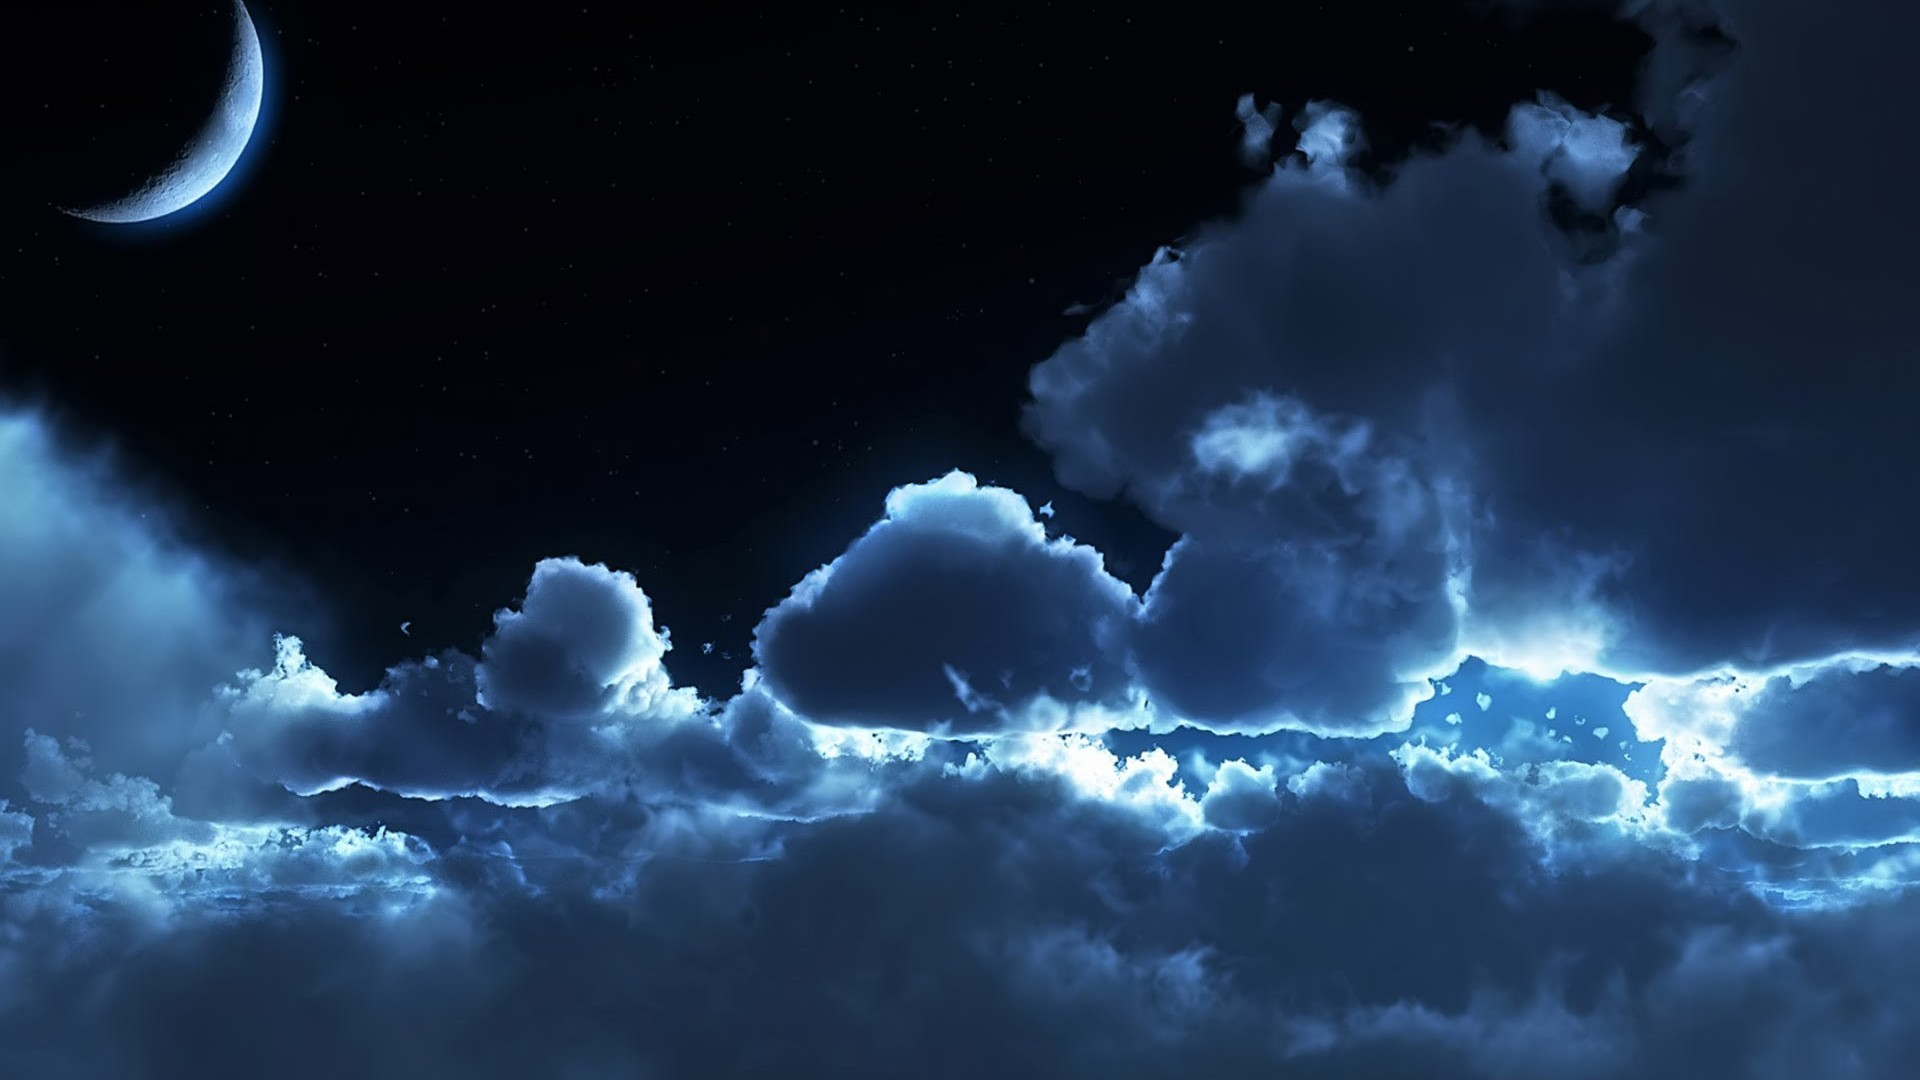 Night Sky Clouds Hd Wallpapers